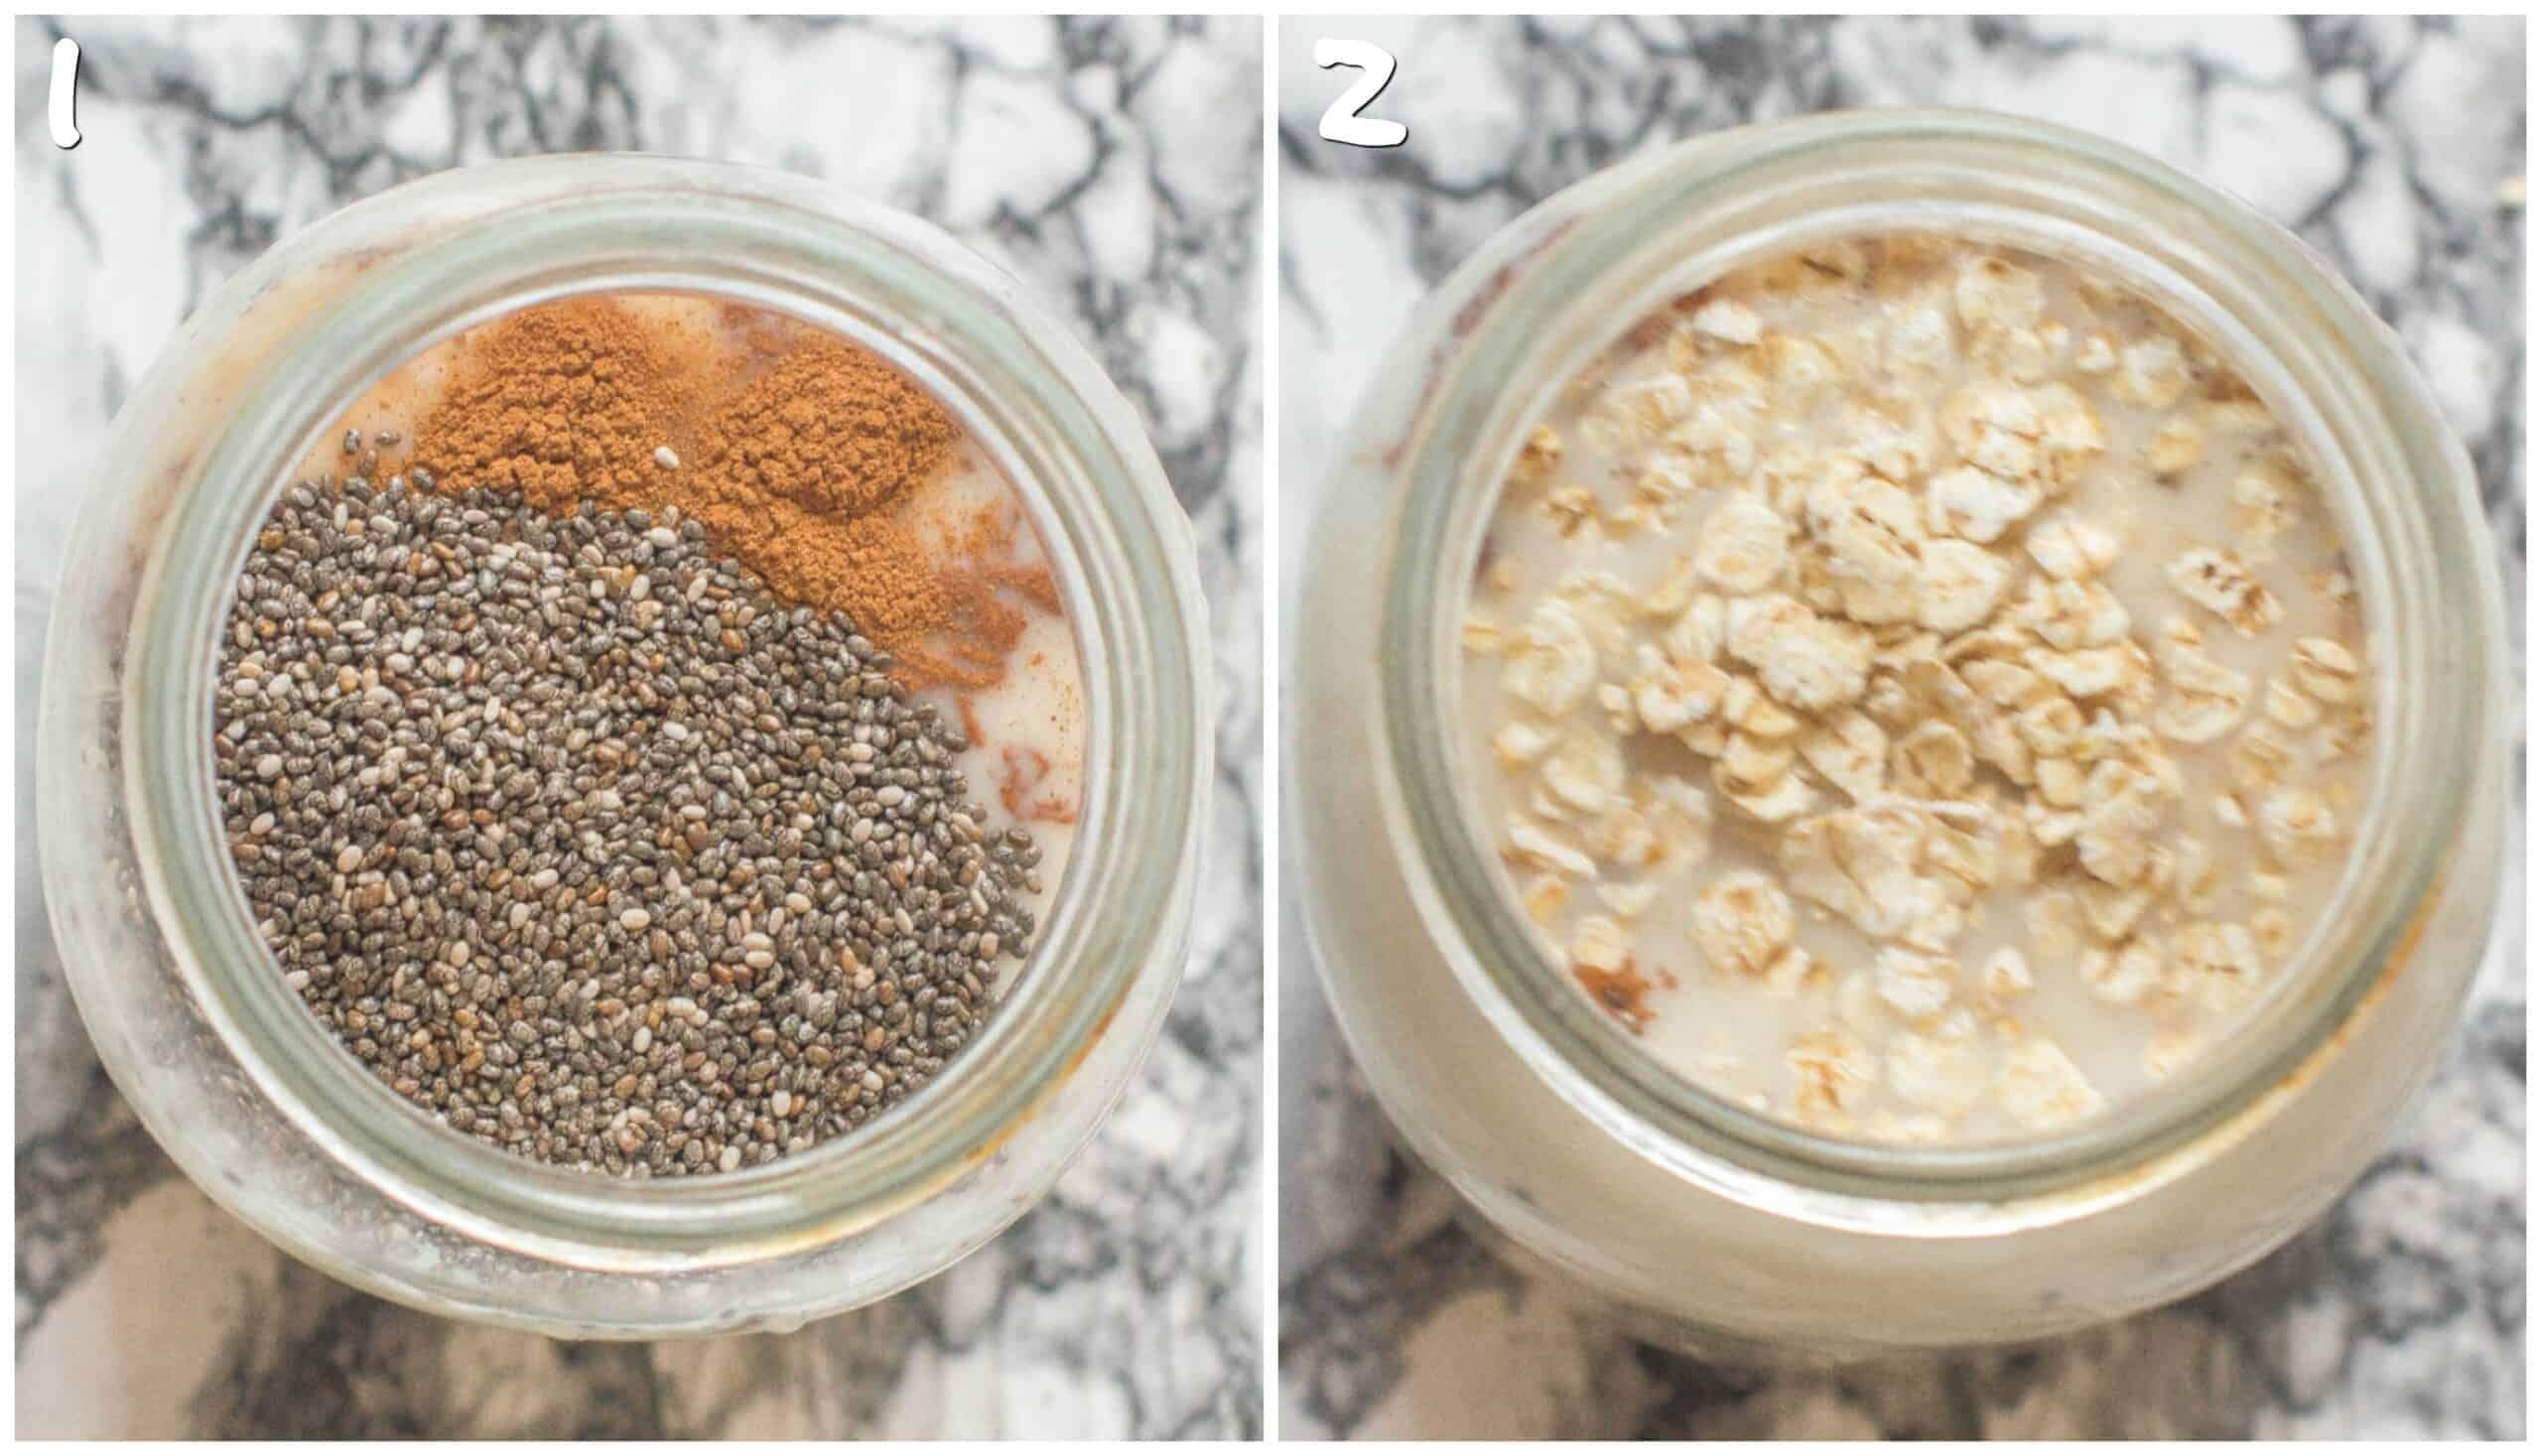 steps for making the overnight oats